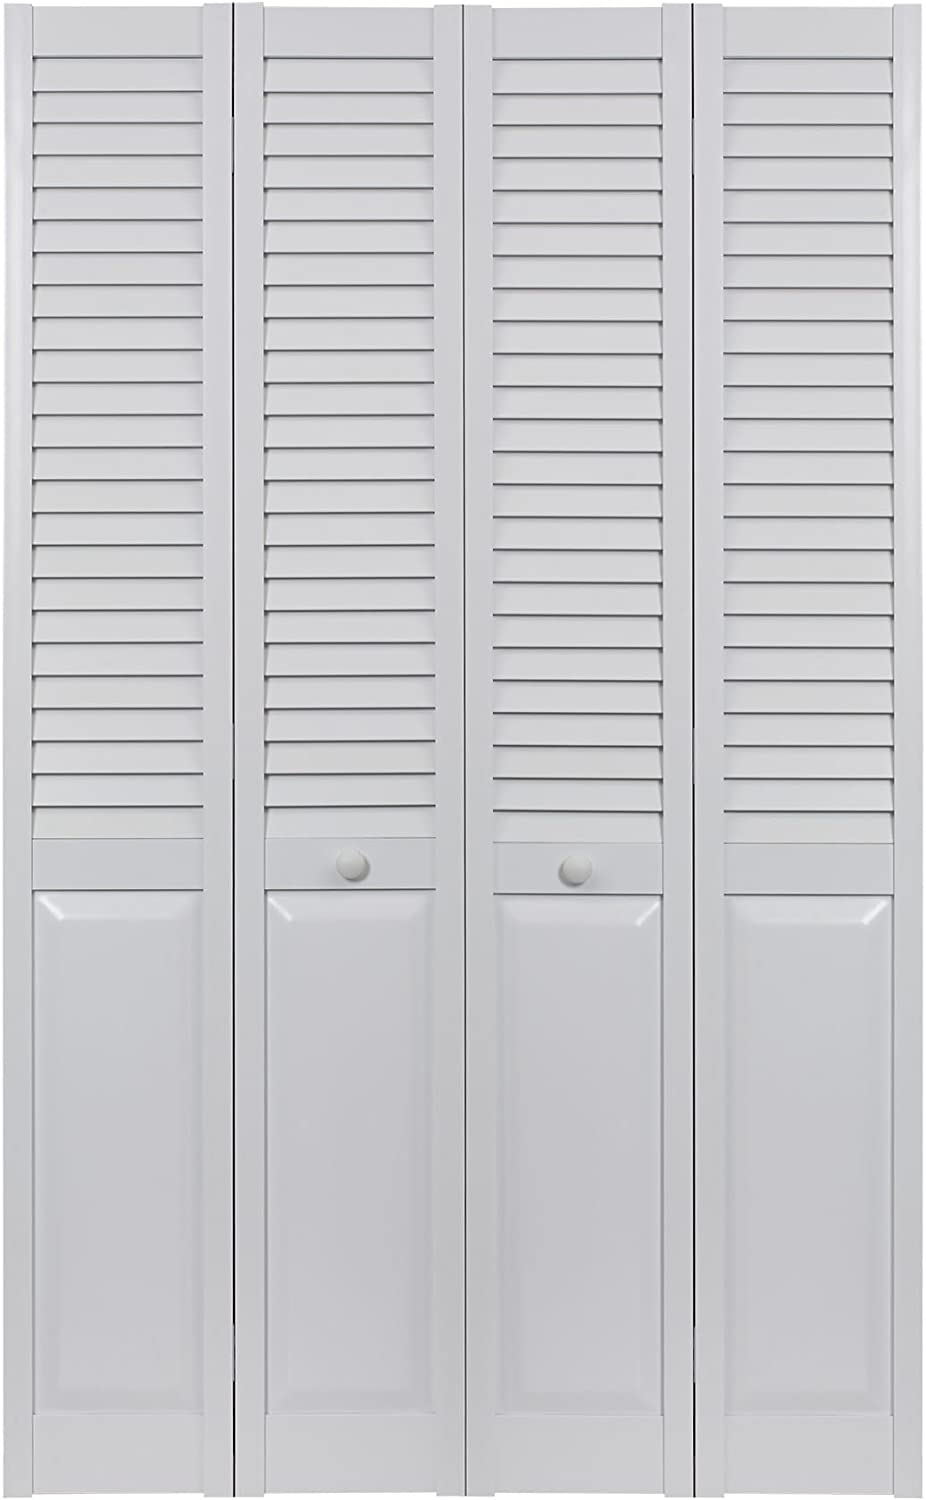 LTL Home Products SEALP60 Seabrooke PVC Louvered & Panel Interior Bifold Door (2 Pack), 78.625